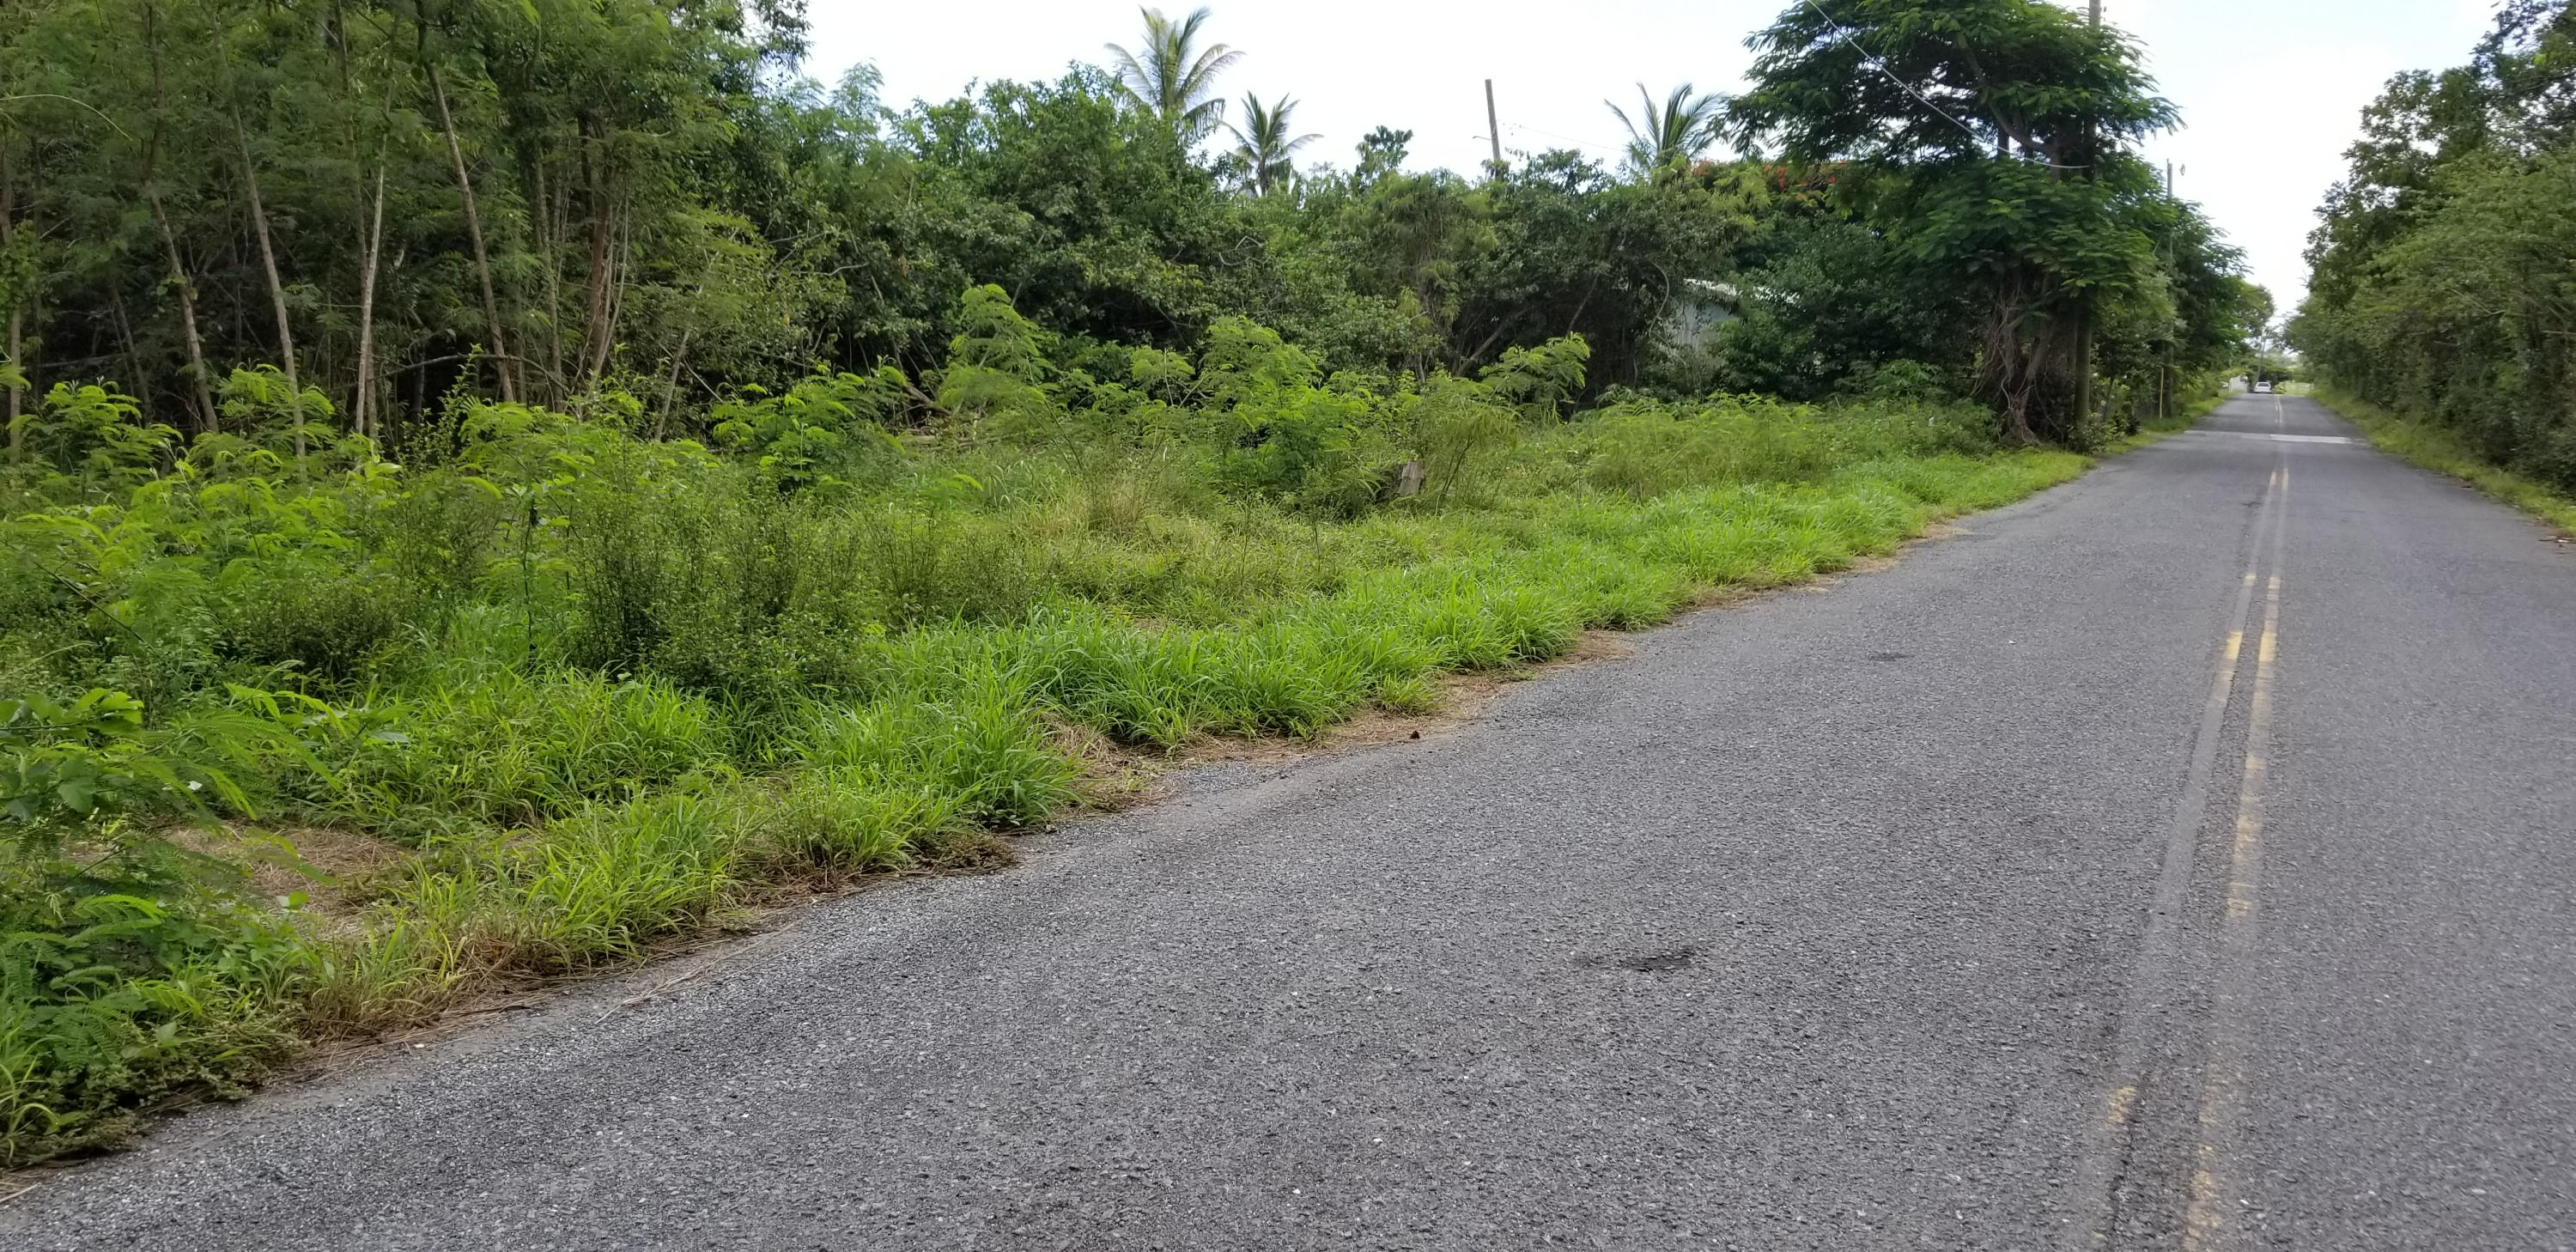 Land for Sale at 15-A Constitution Hill CO 15-A Constitution Hill CO St Croix, Virgin Islands 00820 United States Virgin Islands